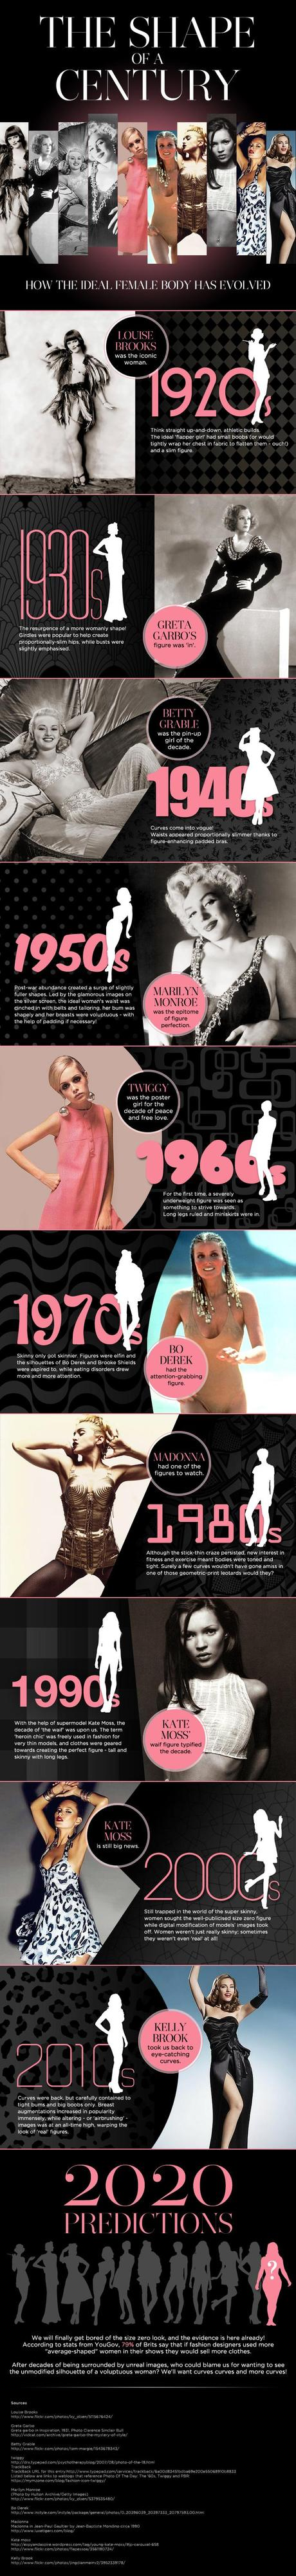 How Women's Bodies Have Evolved Infographic